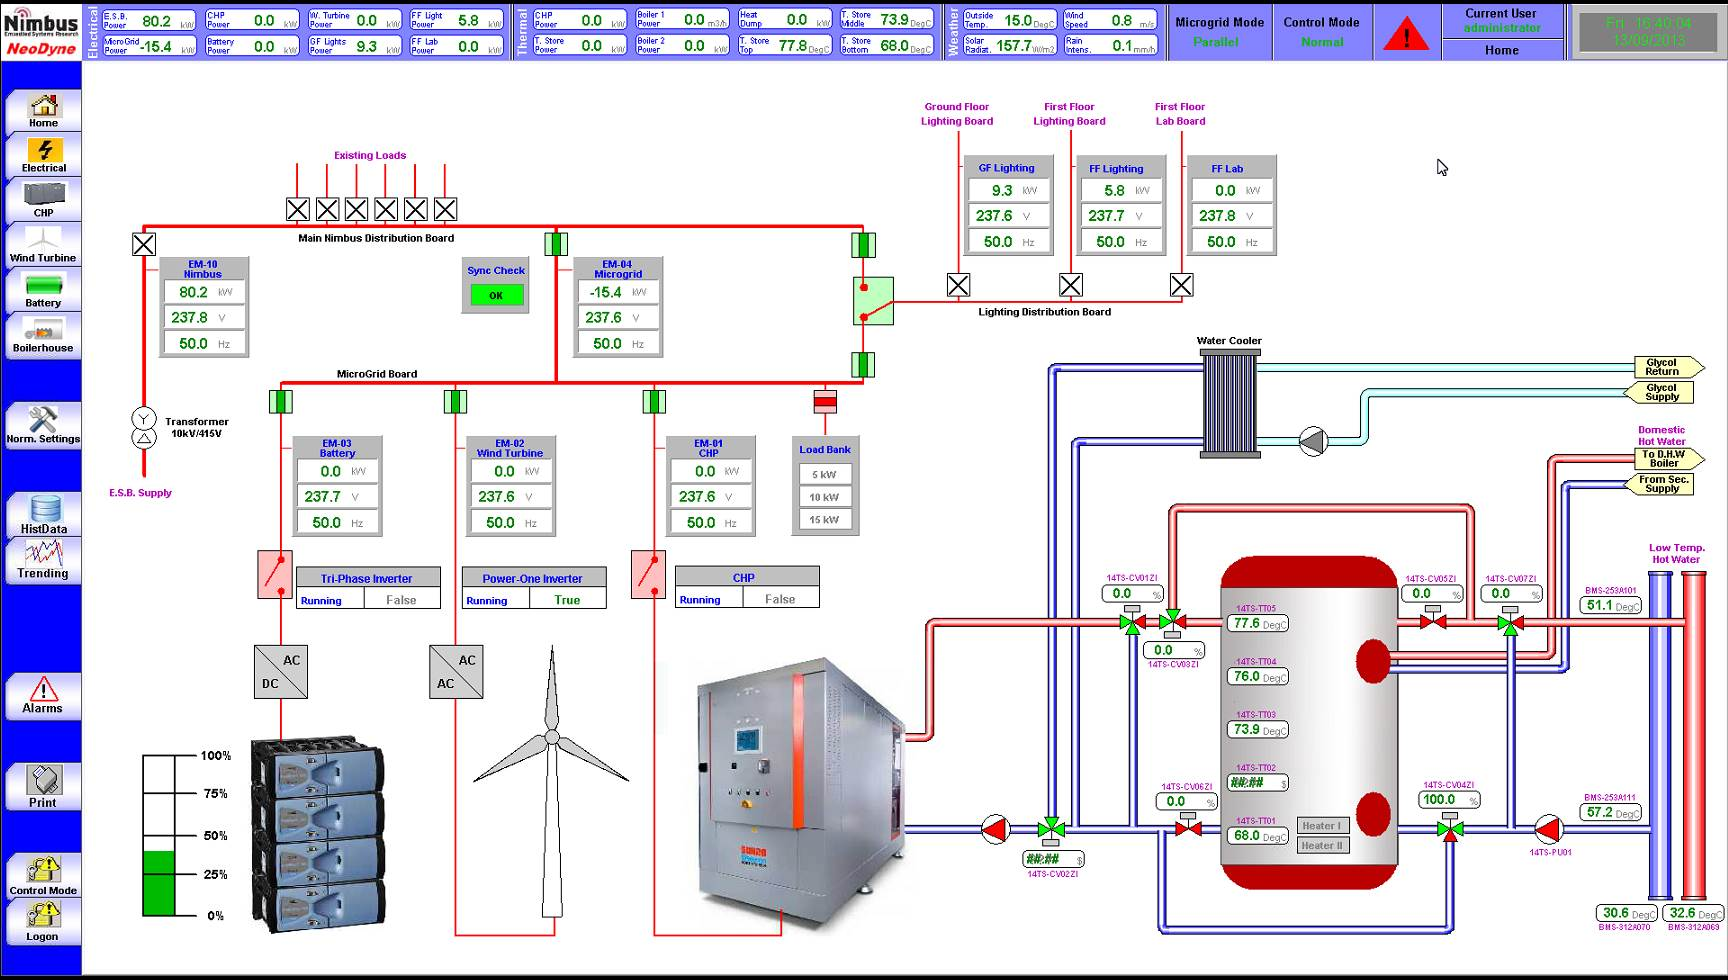 Borealis case study management control systems